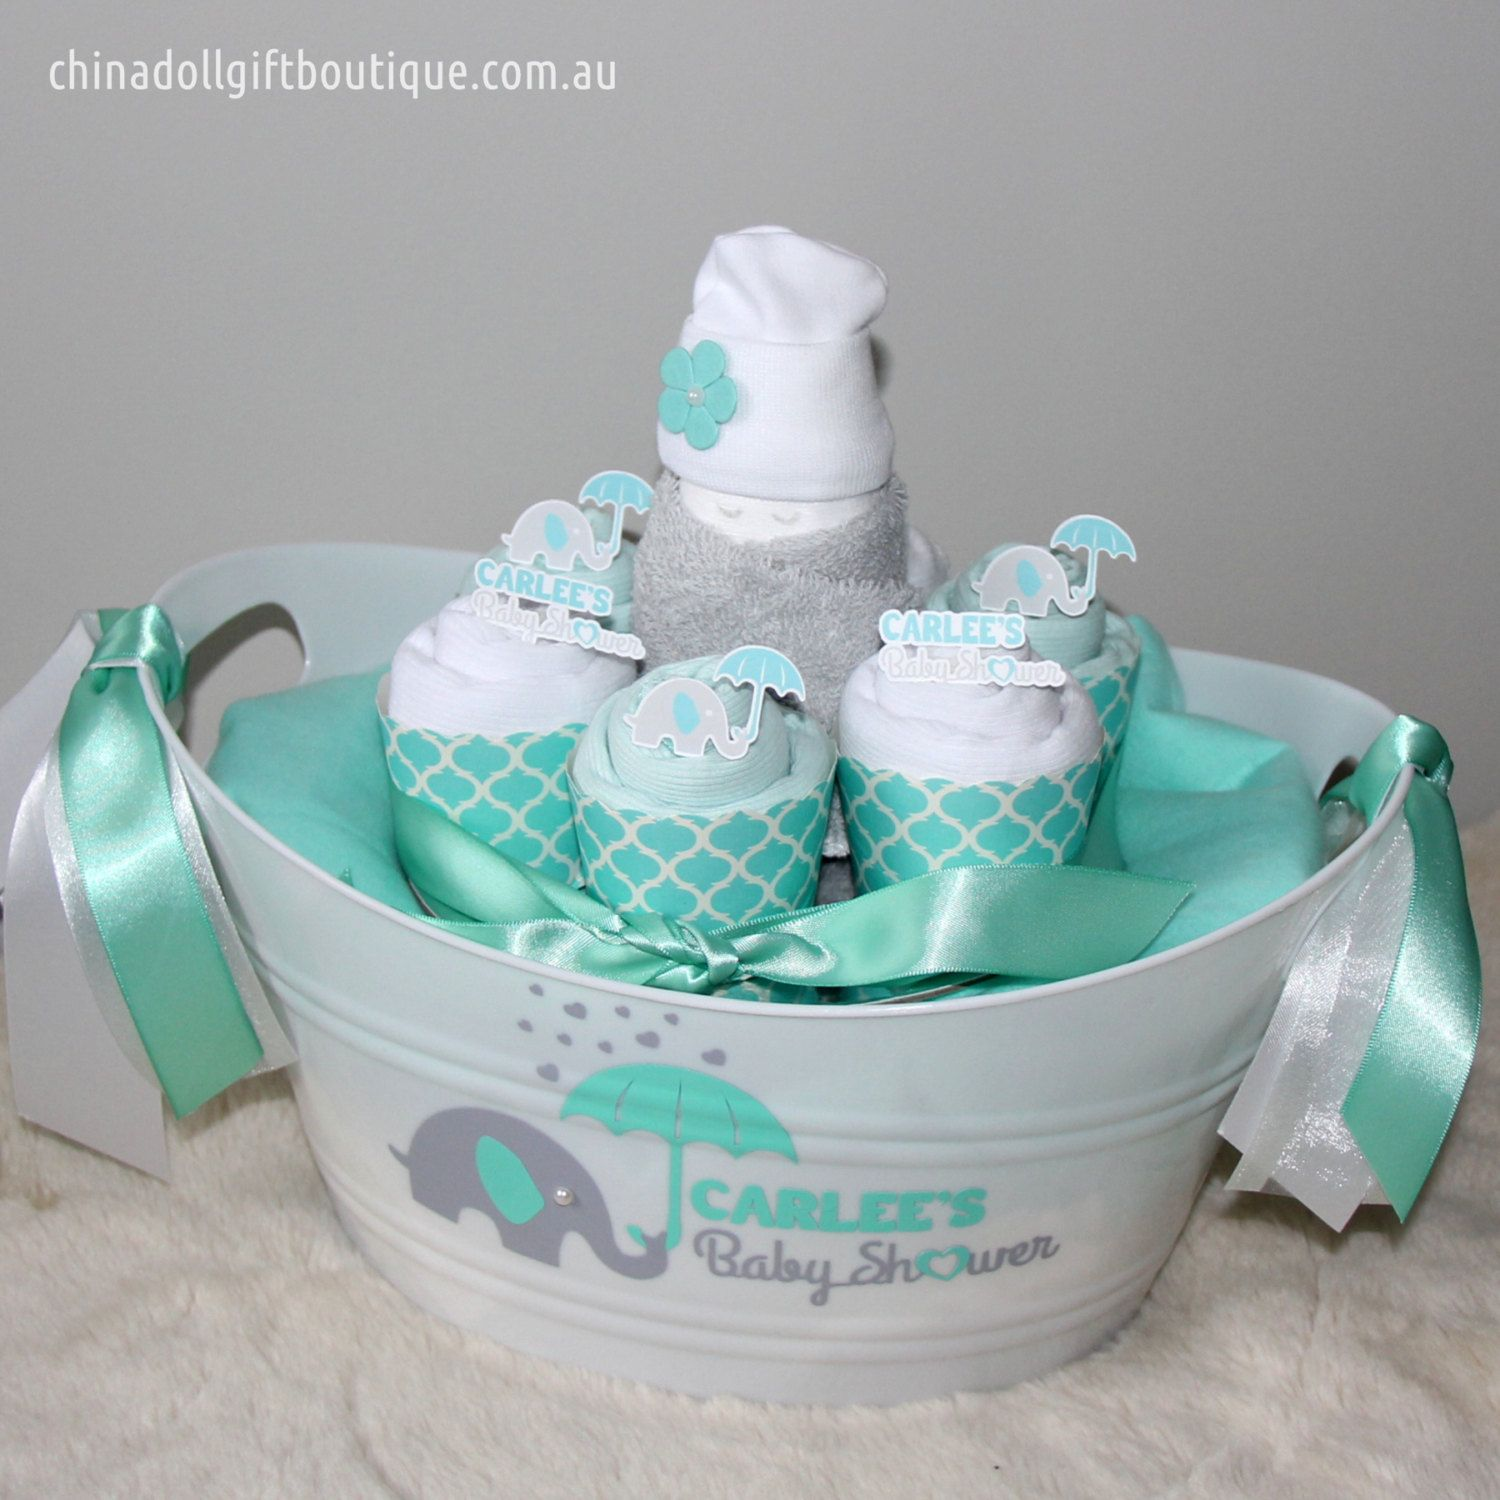 Baby shower gift basket small personalised baby boy newborn baby shower gift basket small personalised baby boy newborn gift gift for mum negle Gallery